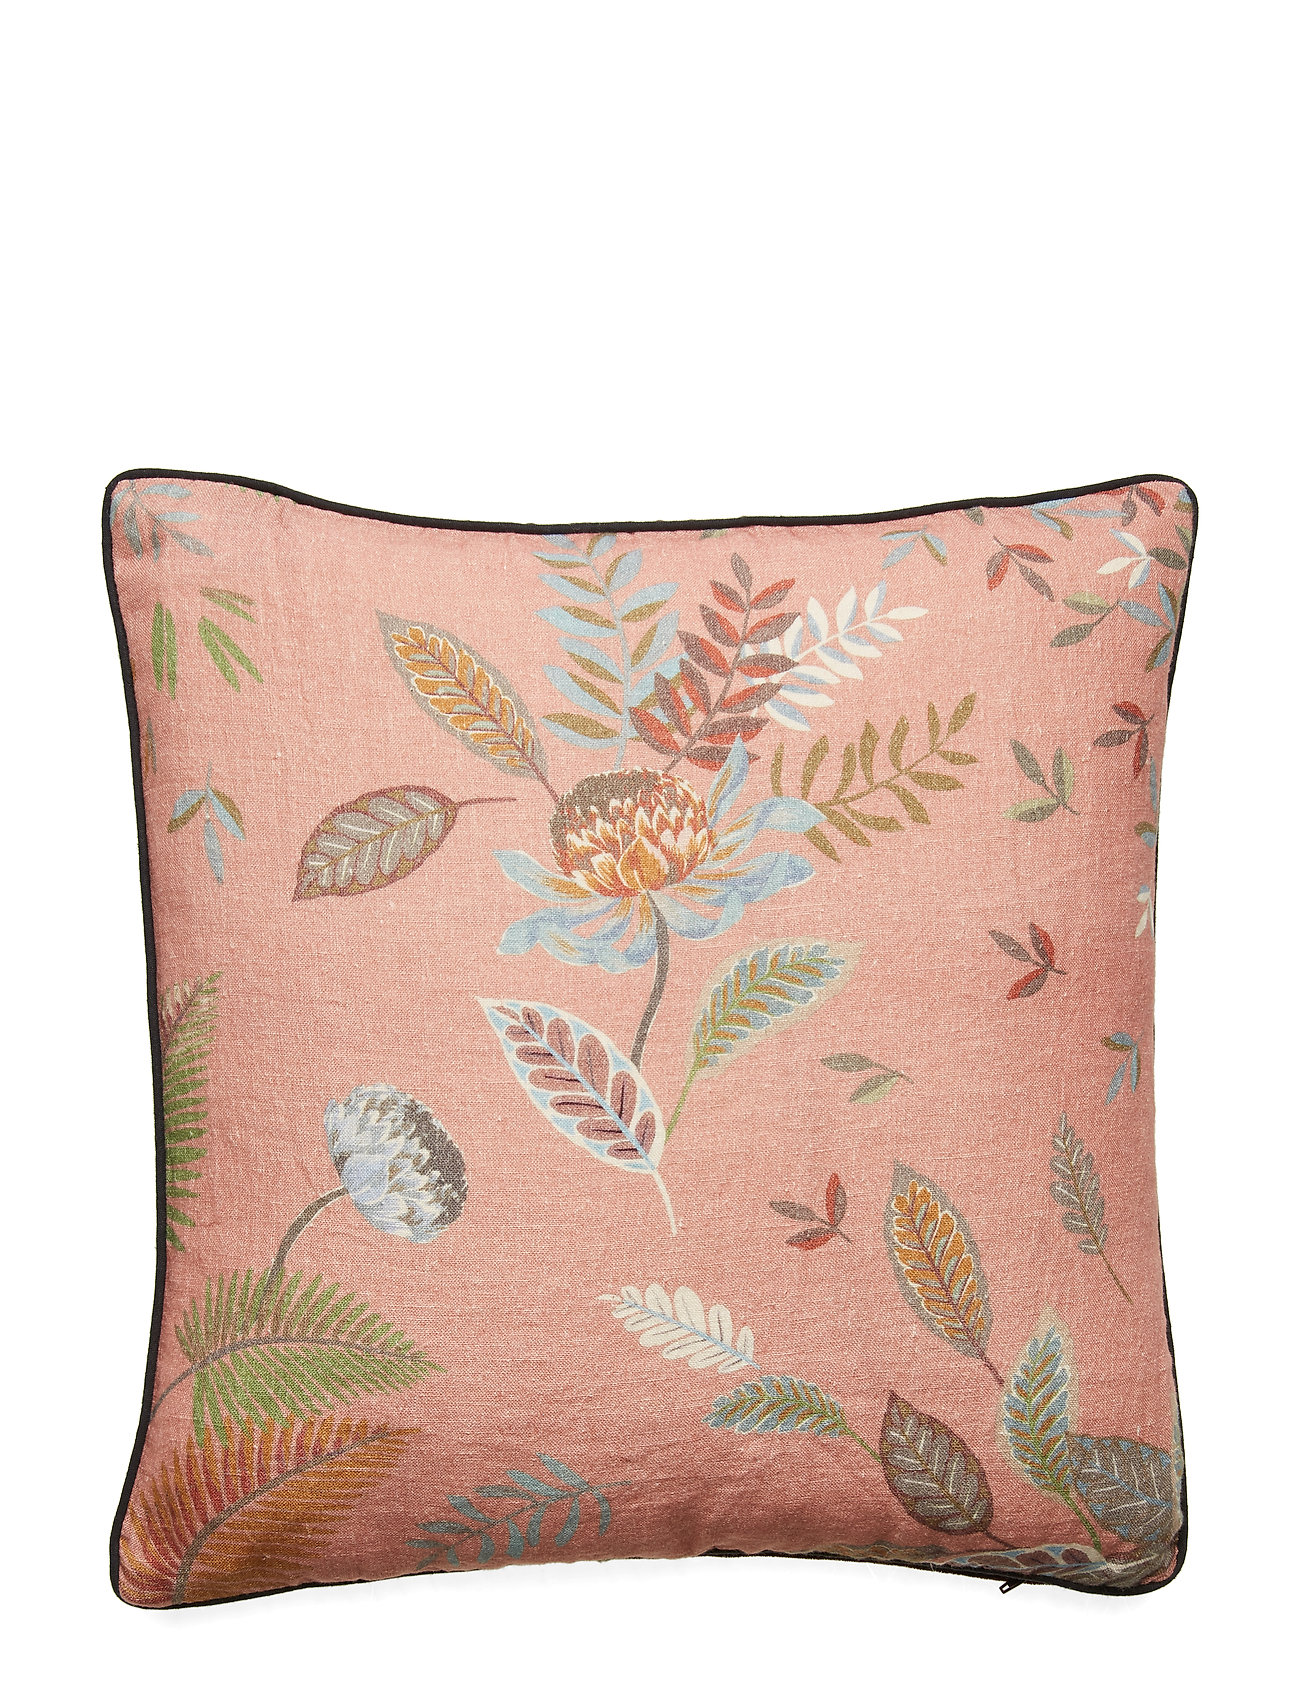 Day Cushion CovercicekHome Day CovercicekHome Botanica Cushion Botanica Cushion CovercicekHome Day Botanica Day mwOyvNP8n0